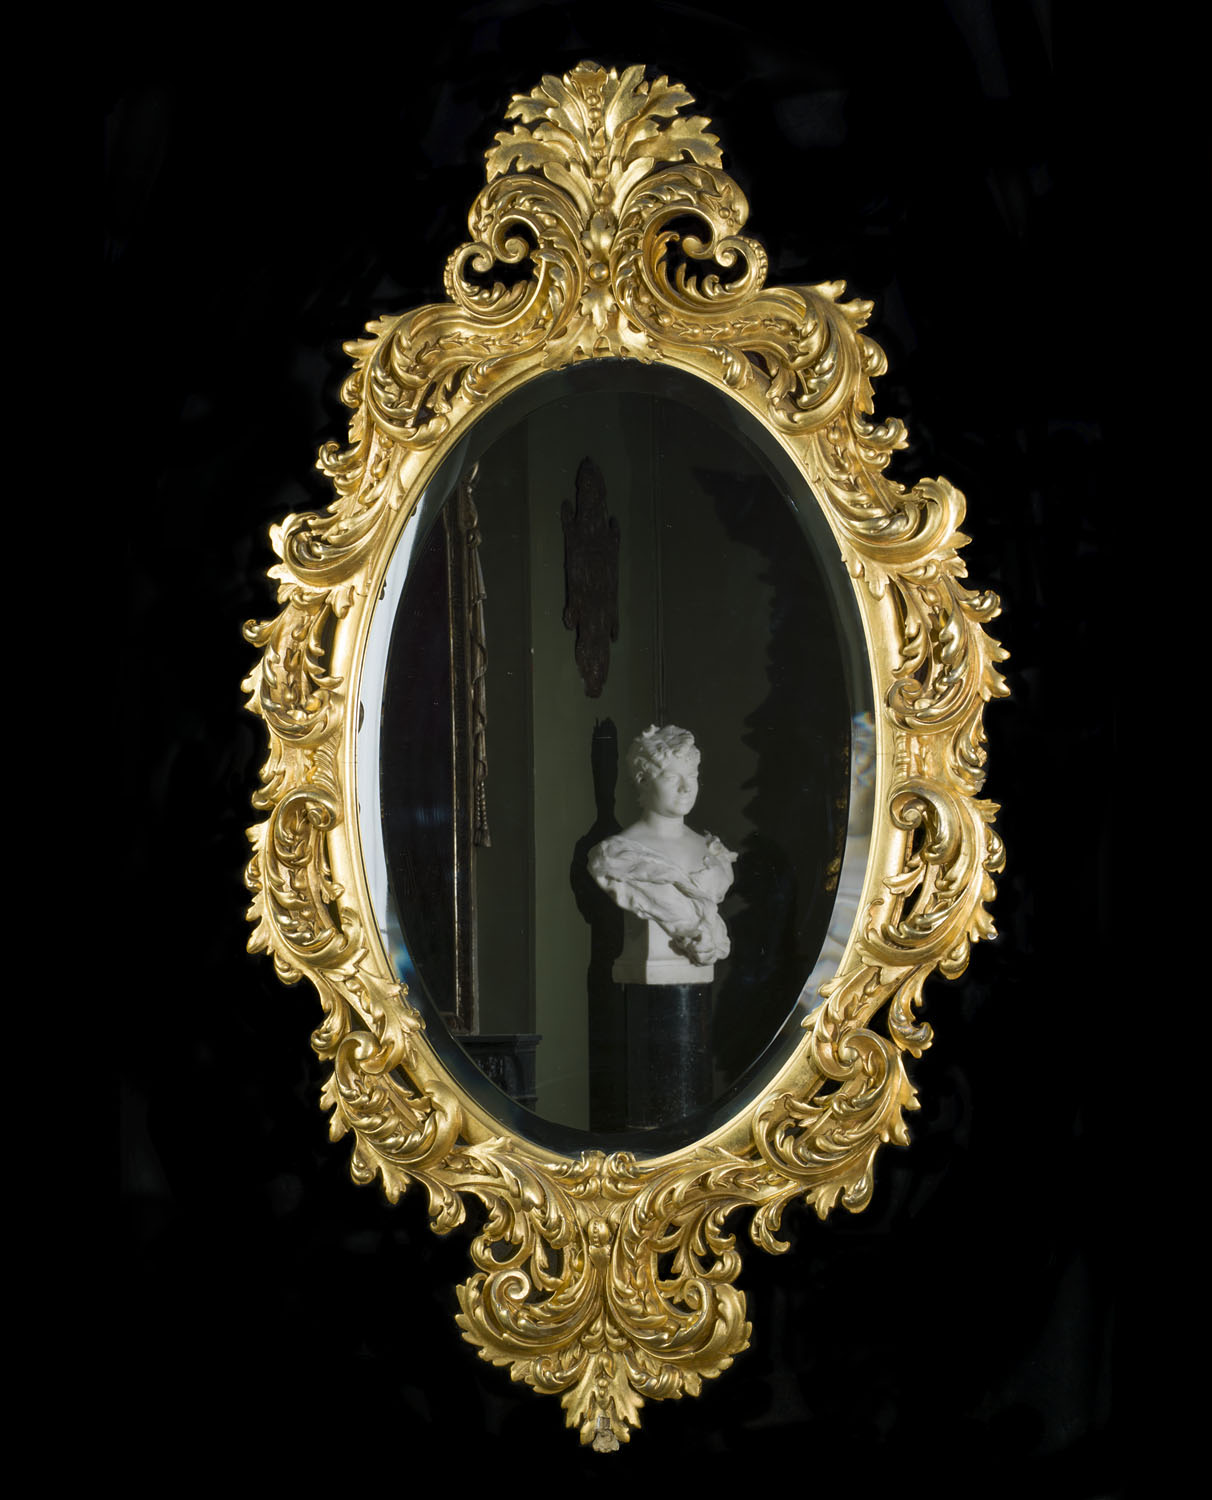 Ornate Rococo Style antique giltwood wall mirror